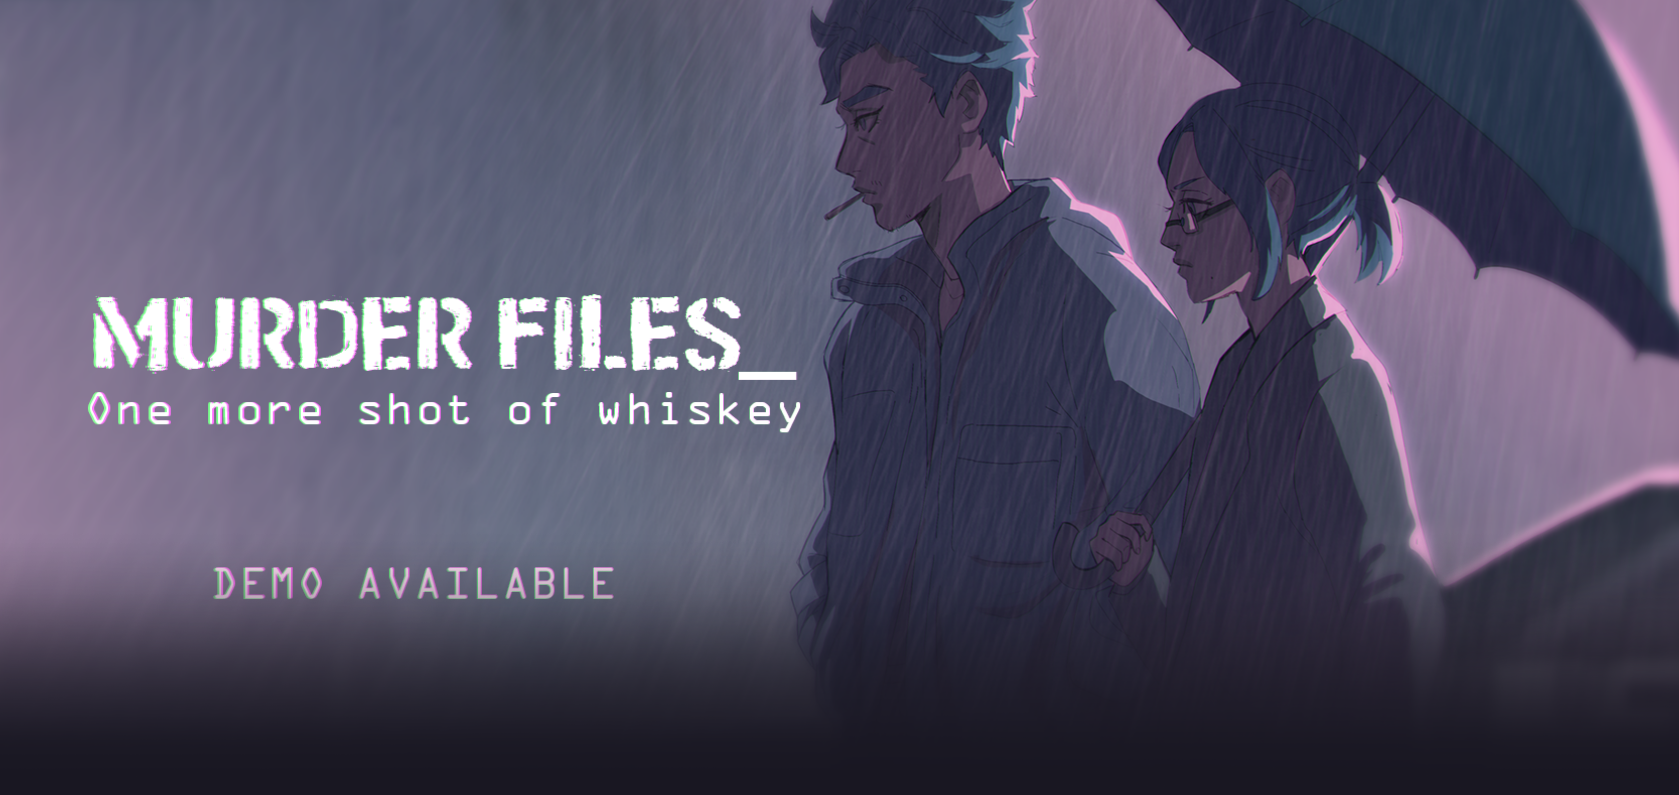 Murder Files: One more shot of whiskey